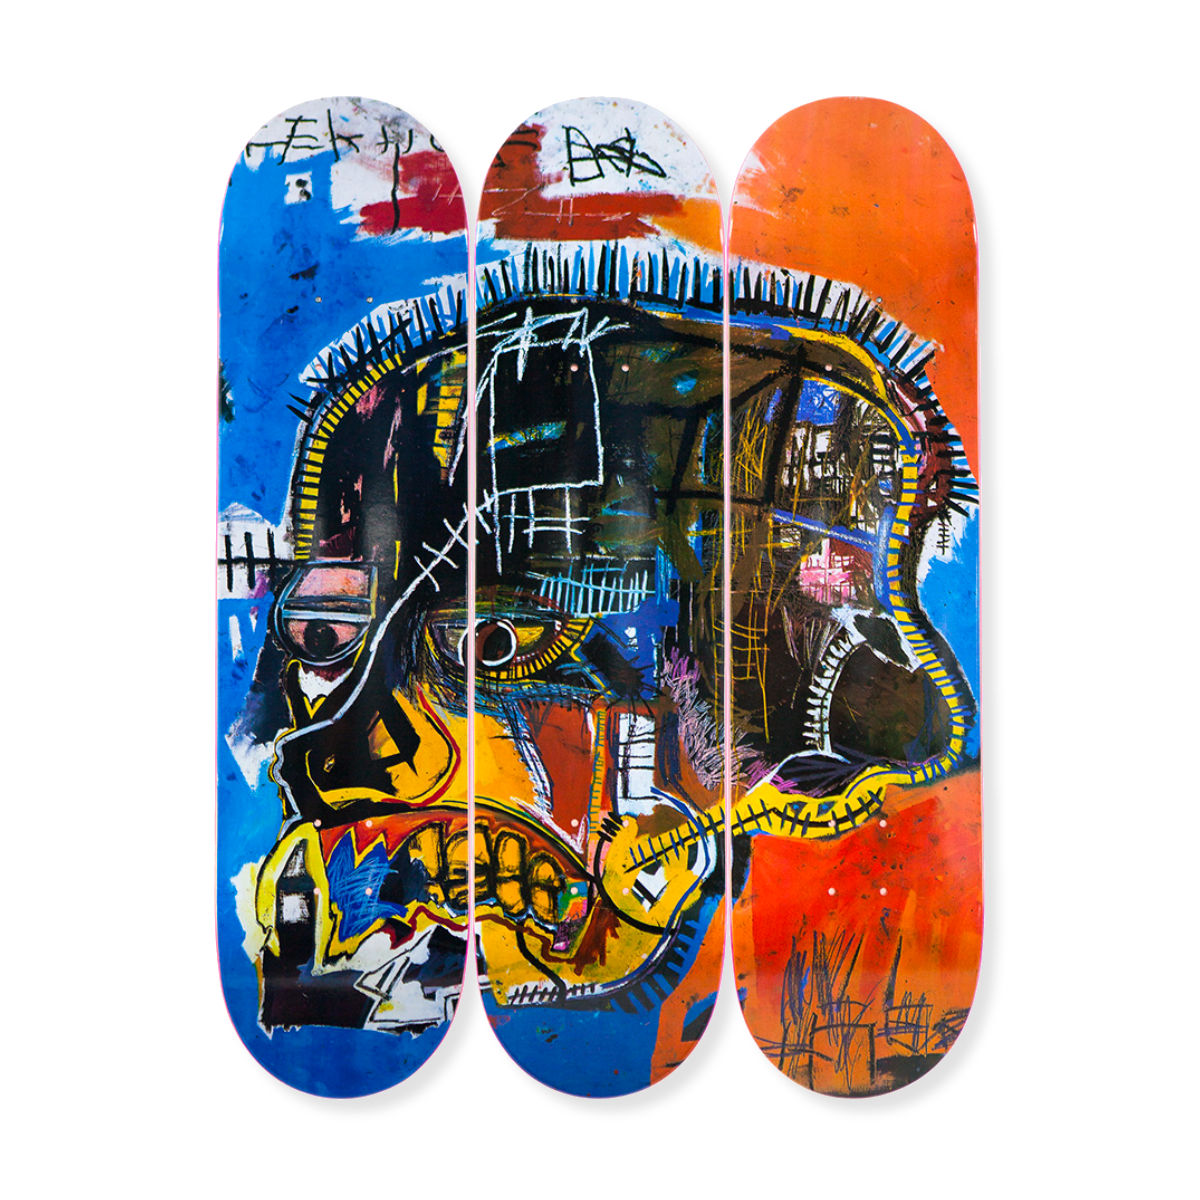 The Skateroom skateboard set, Jean-Michel Basquiat Skull